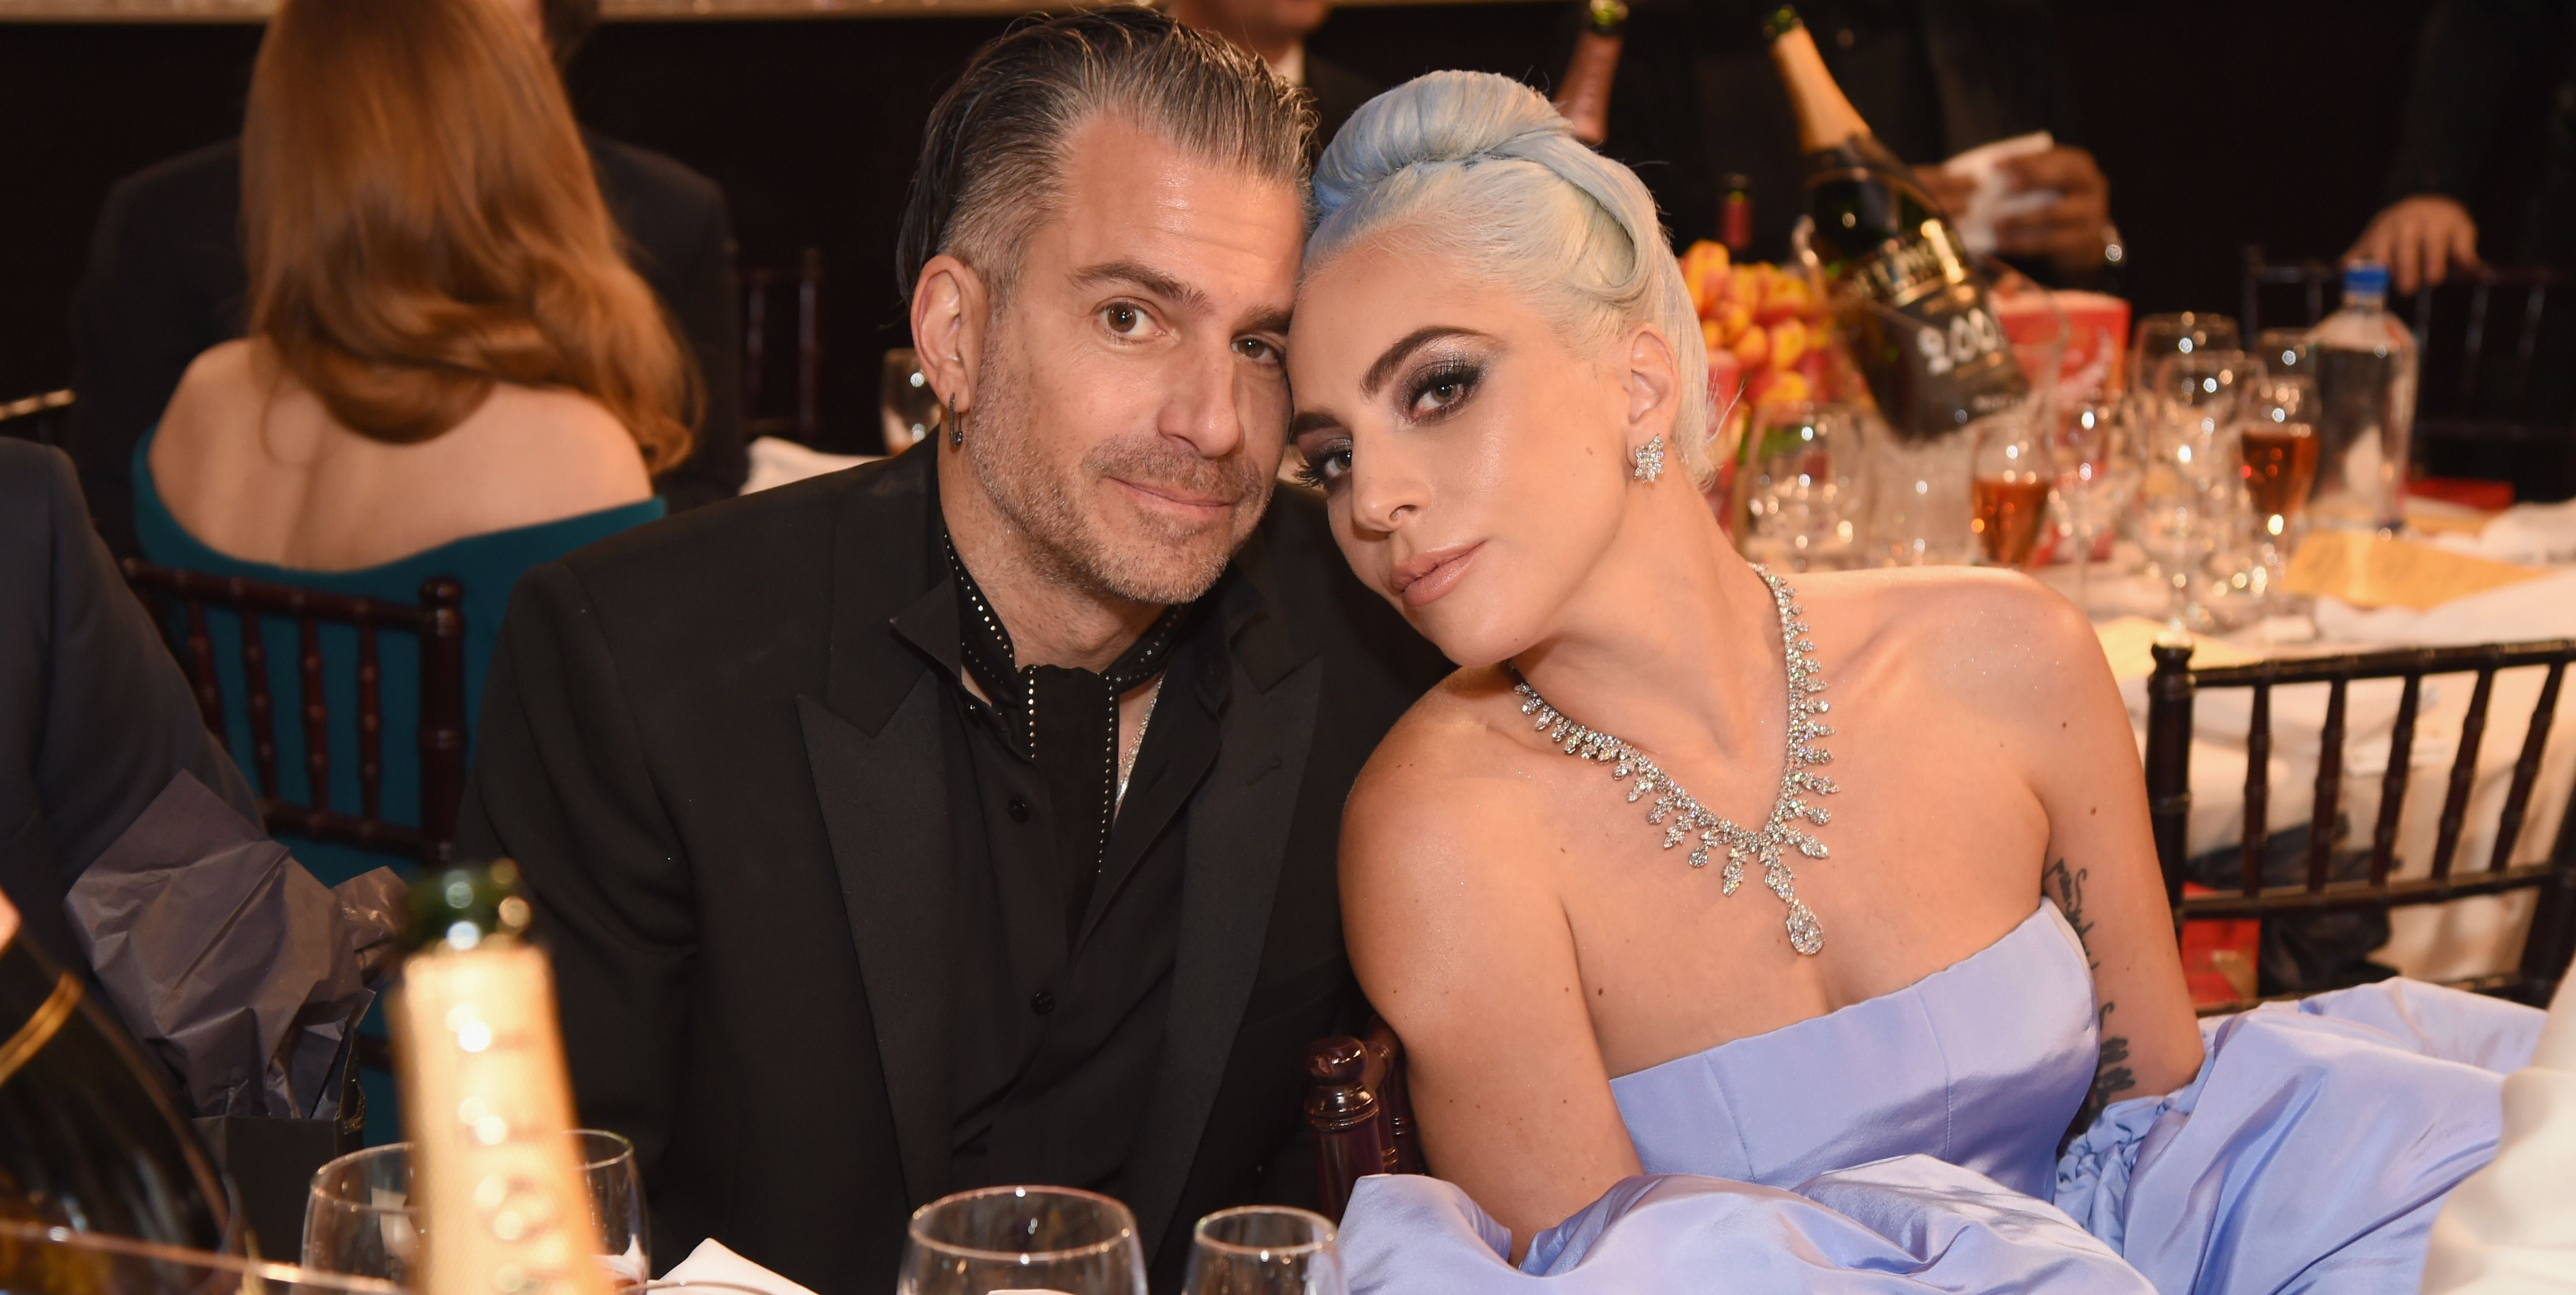 Lady Gaga and Christian Carino Just Called off Their Engagement